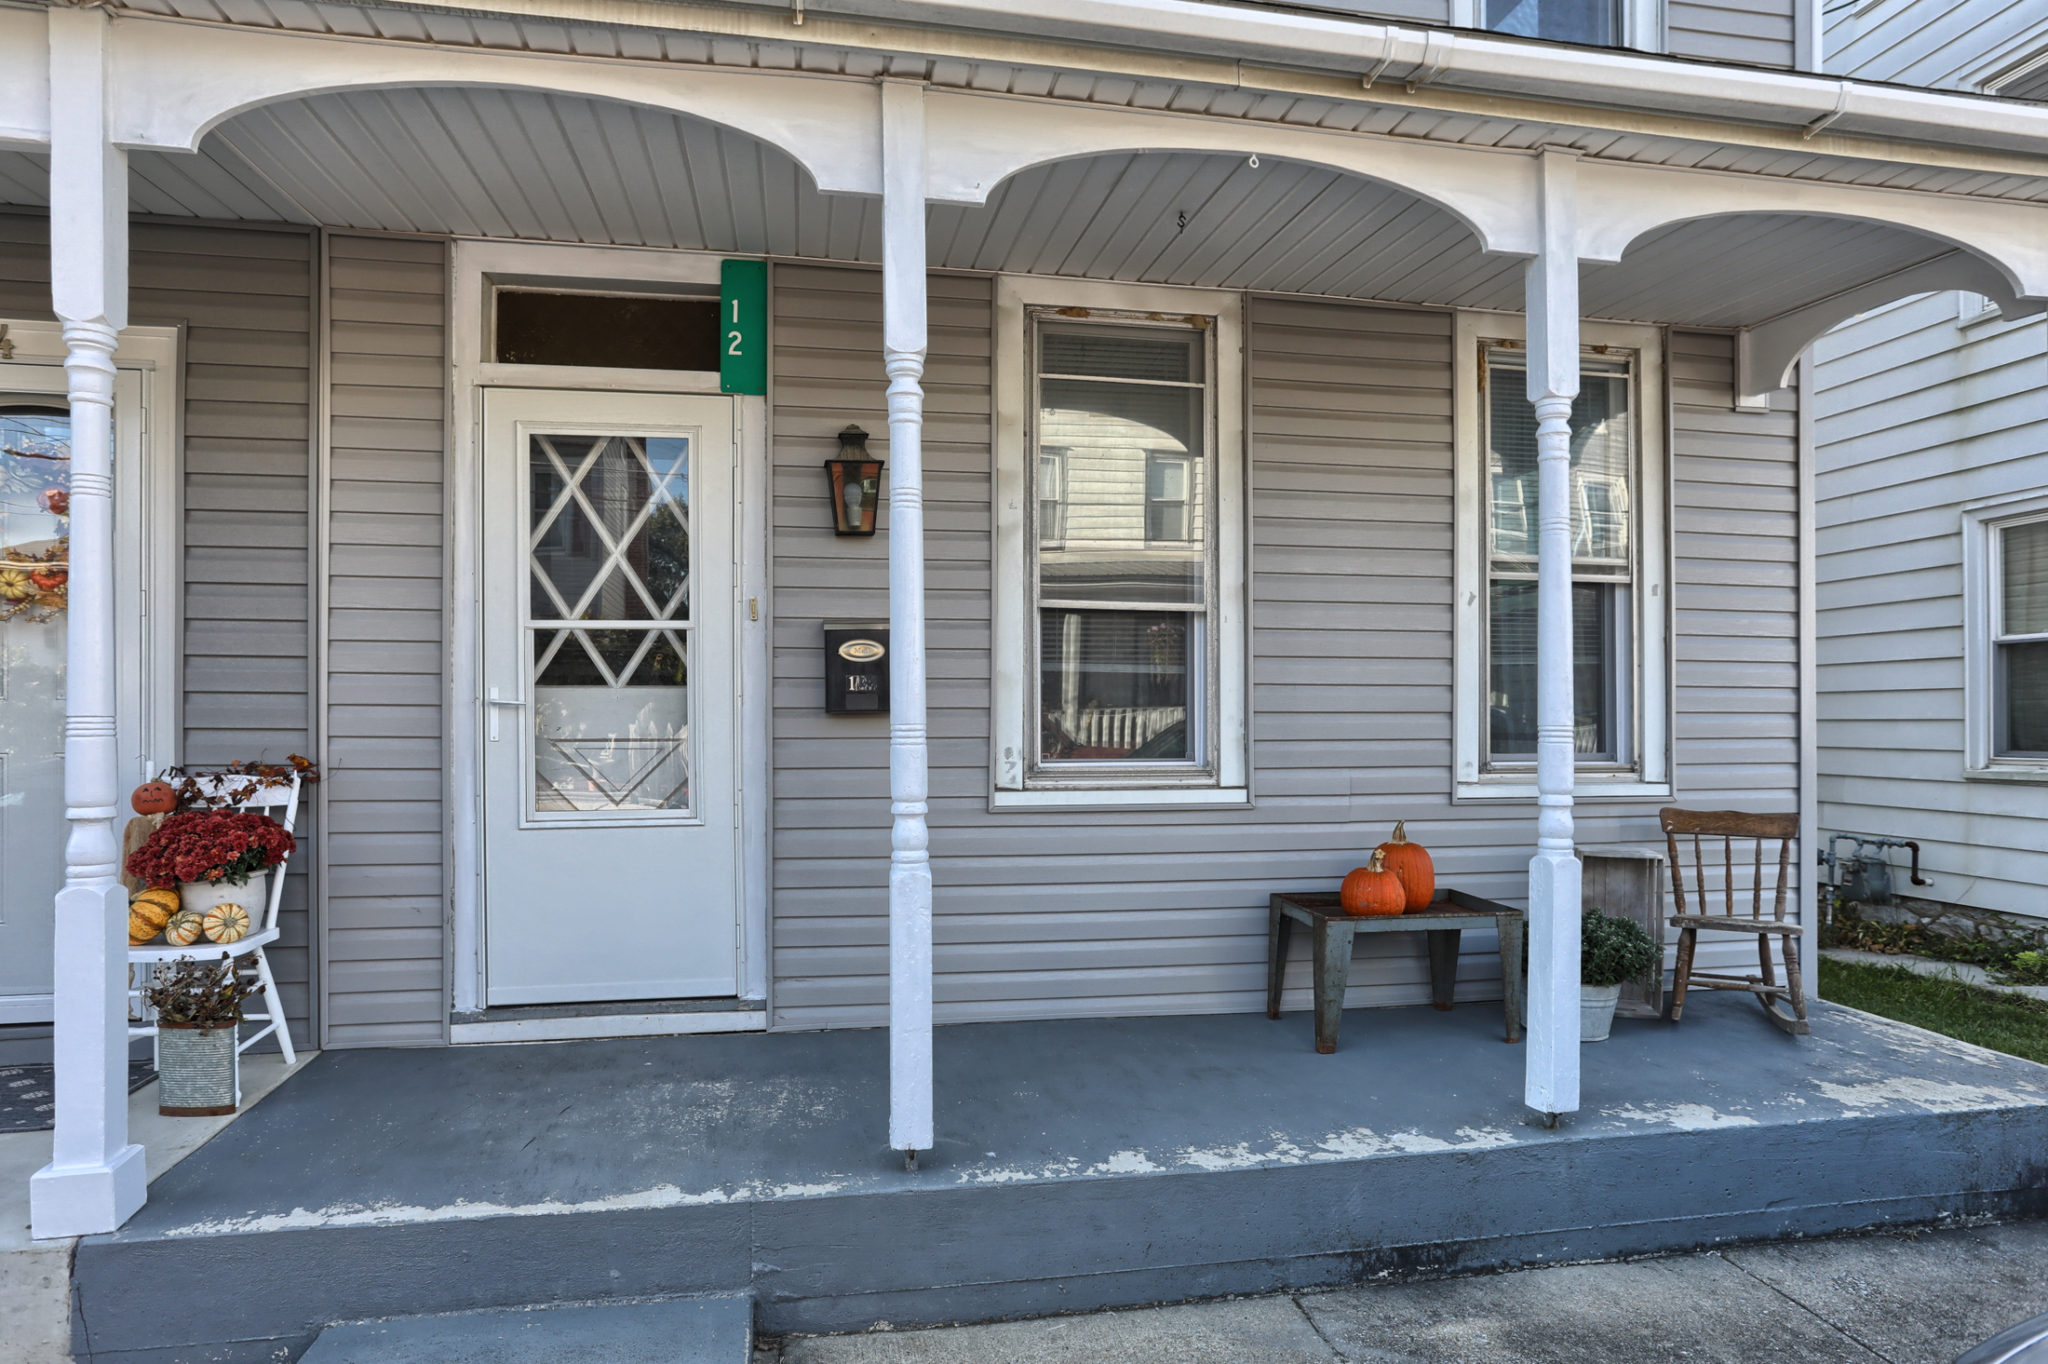 12 E. Maple Avenue - front porch welcomes you to this myerstown home